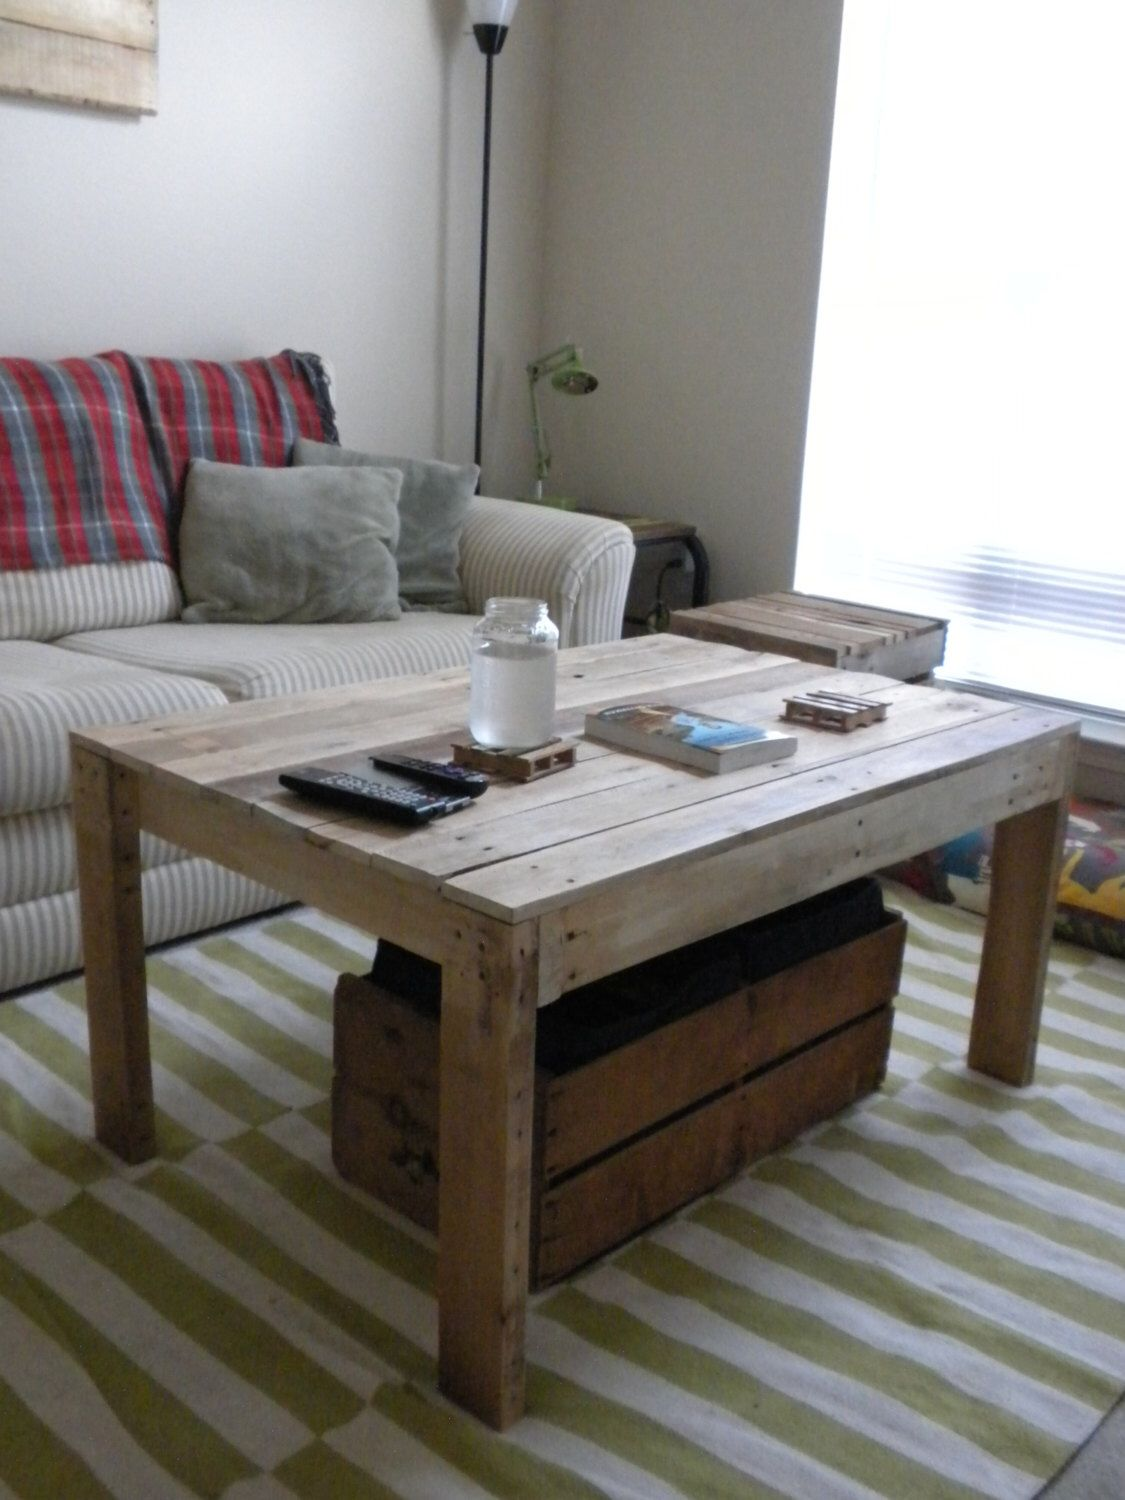 Pine Pallet Coffee Table by HoundDogWood on Etsy https://www.etsy.com/uk/listing/215095952/pine-pallet-coffee-table